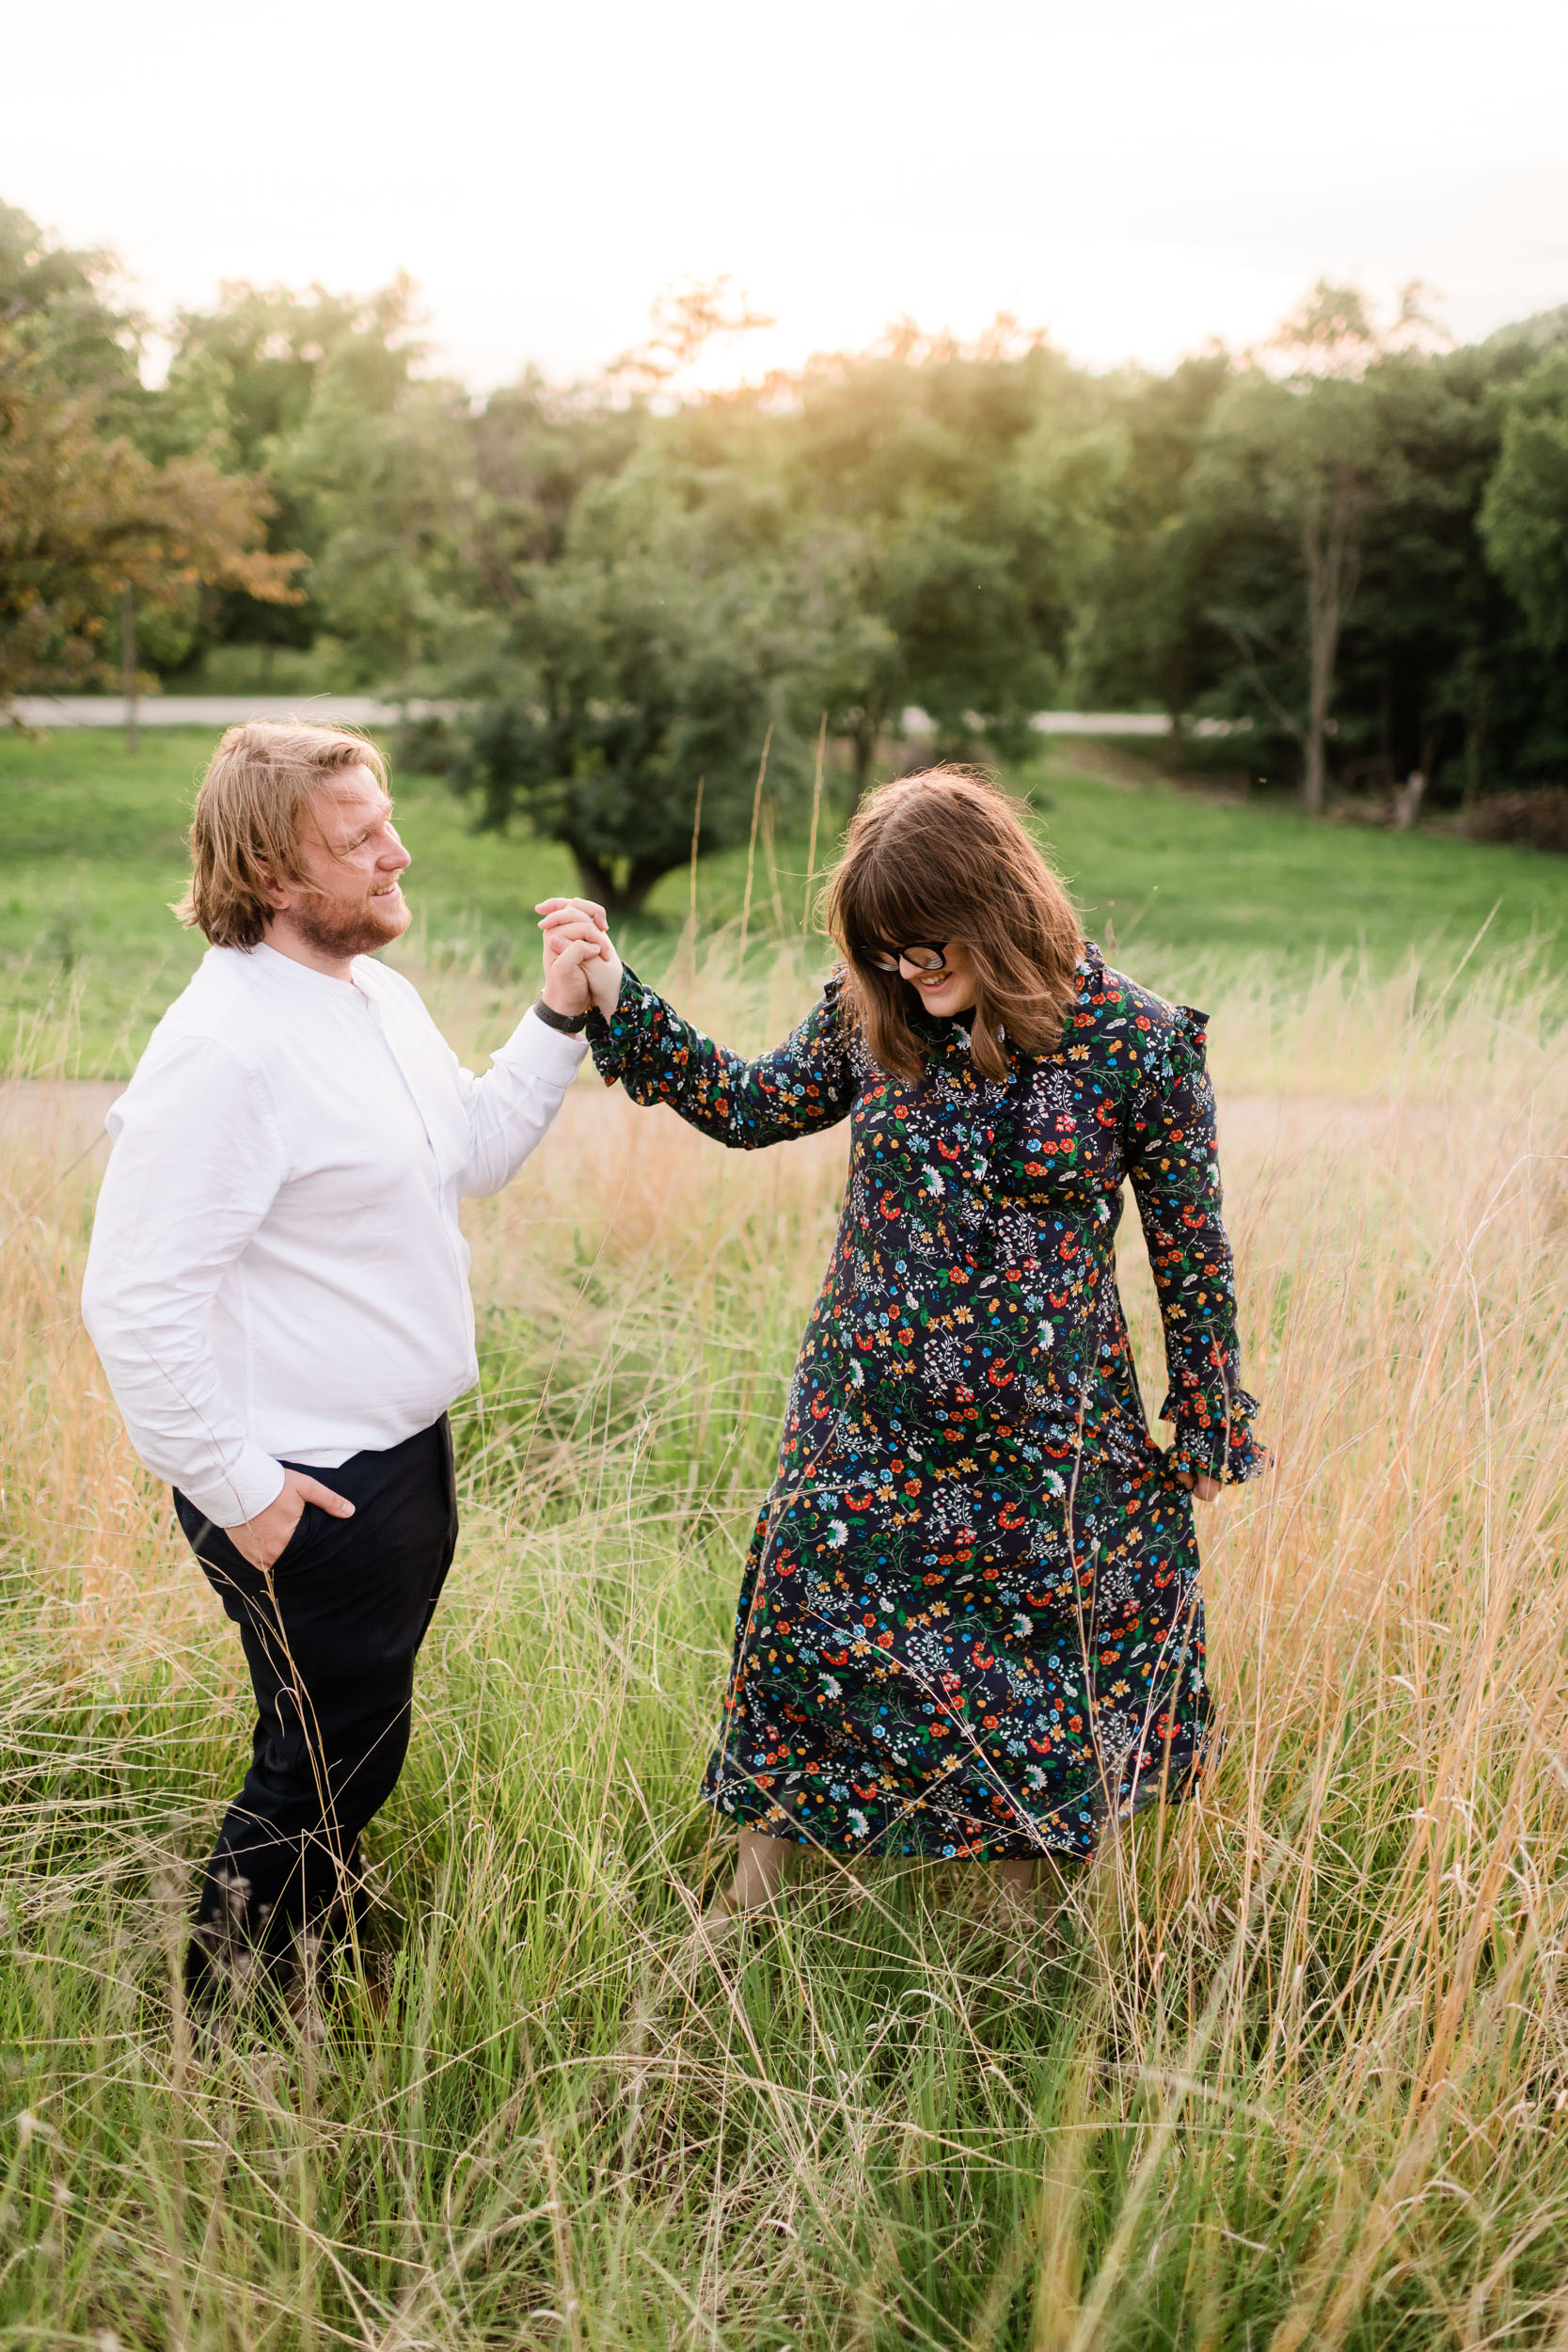 Engaged couple twirling in a field